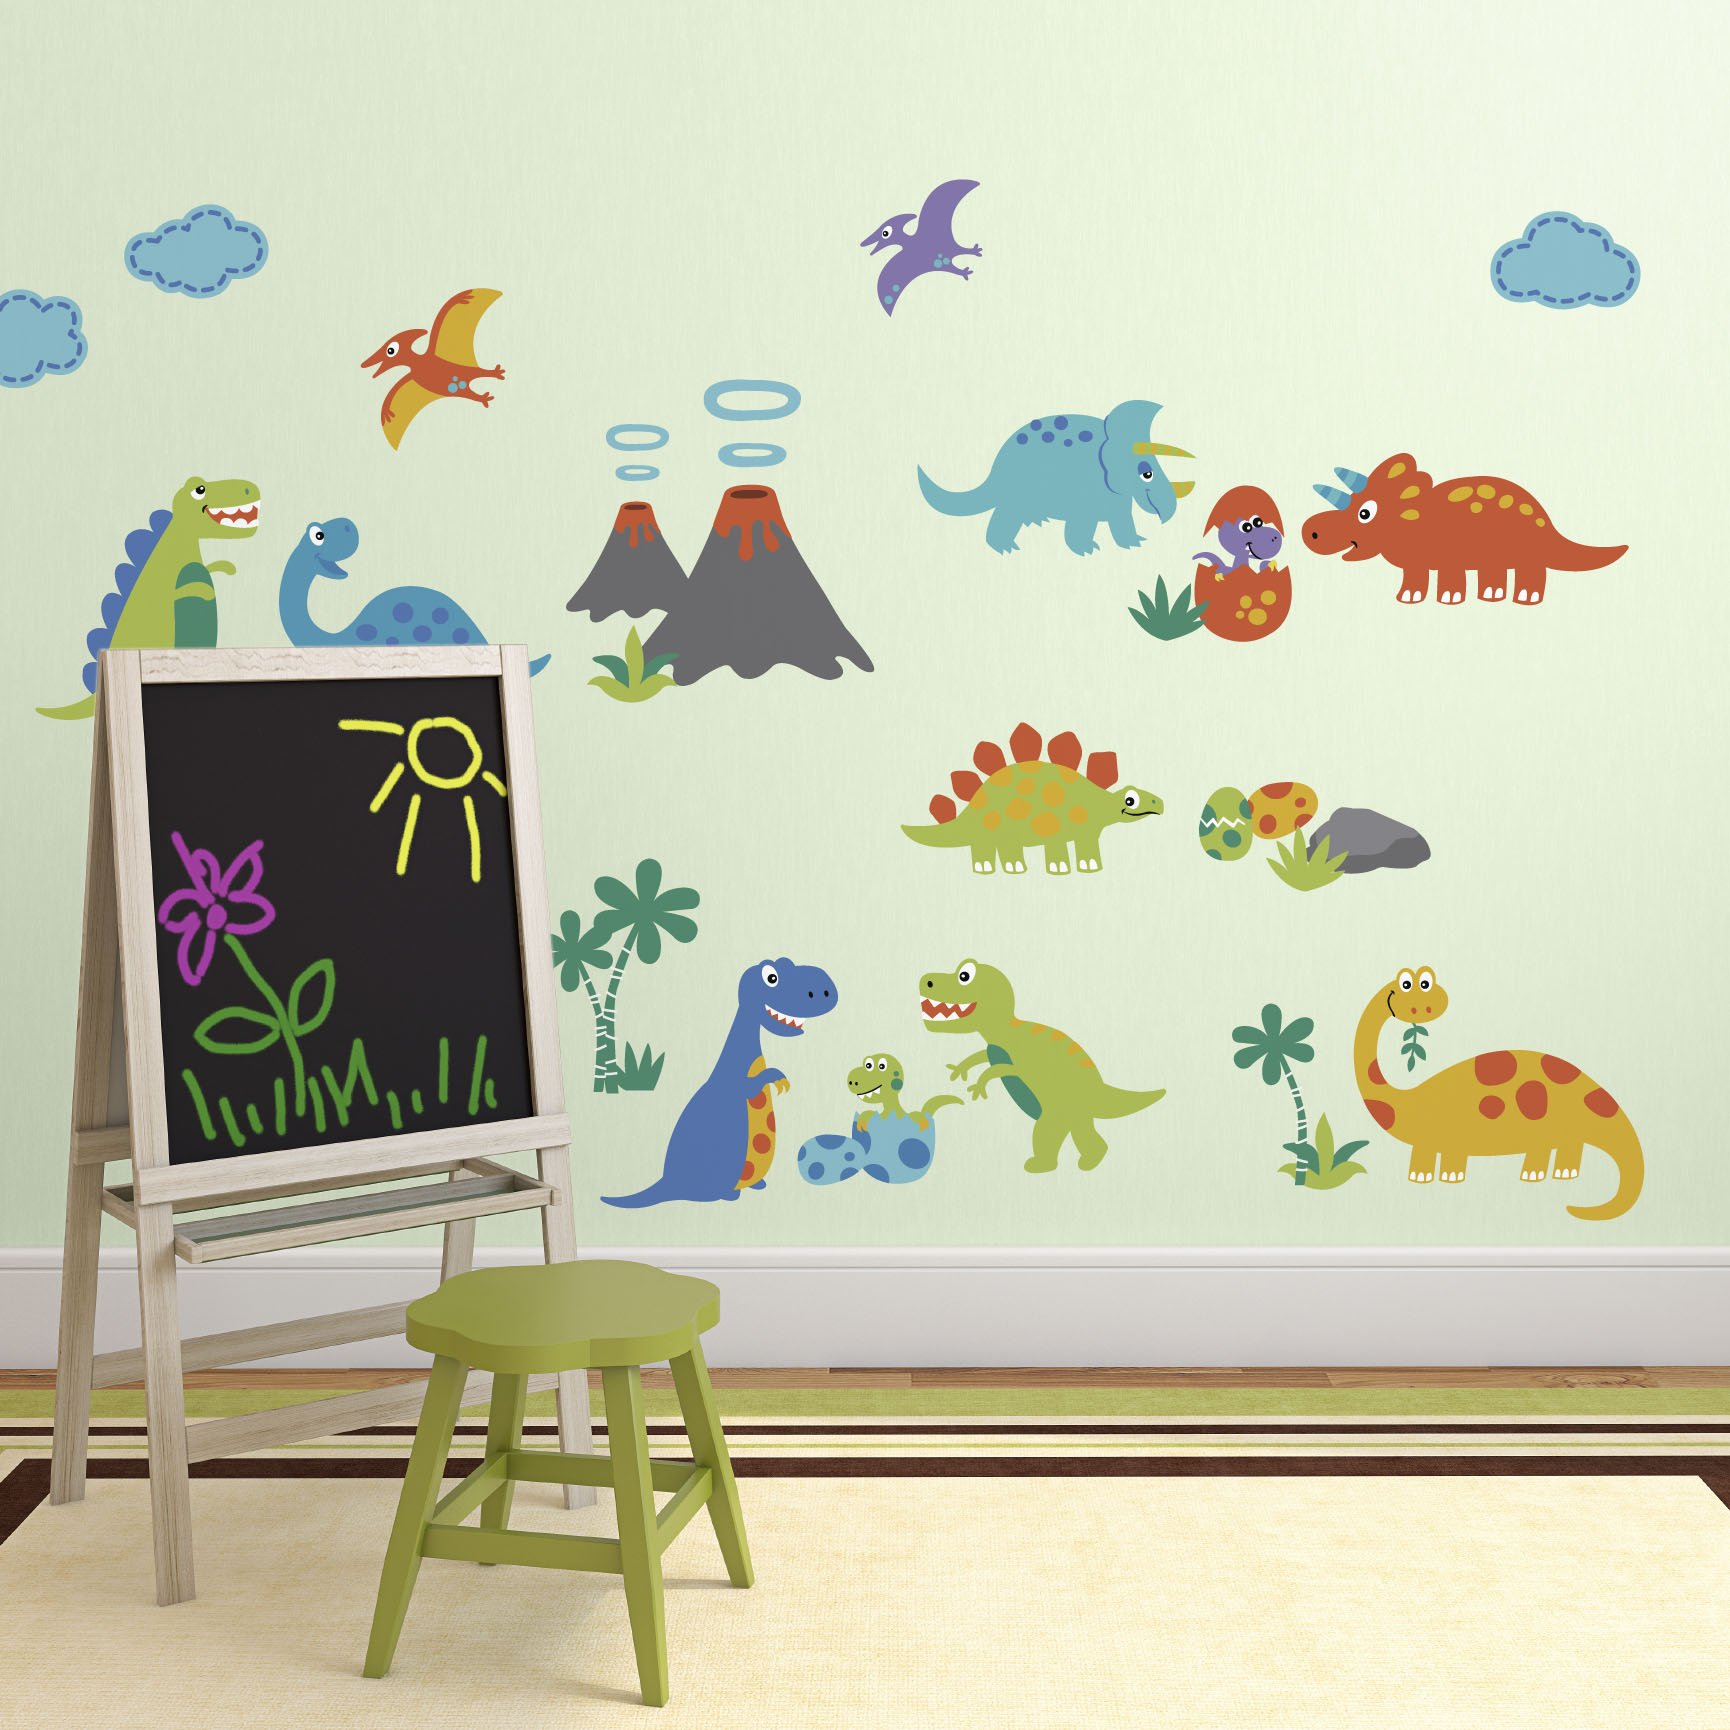 Dino Land Dinosaurs Baby Peel & Stick Wall Sticker Decals by CherryCreek Decals (Image #1)